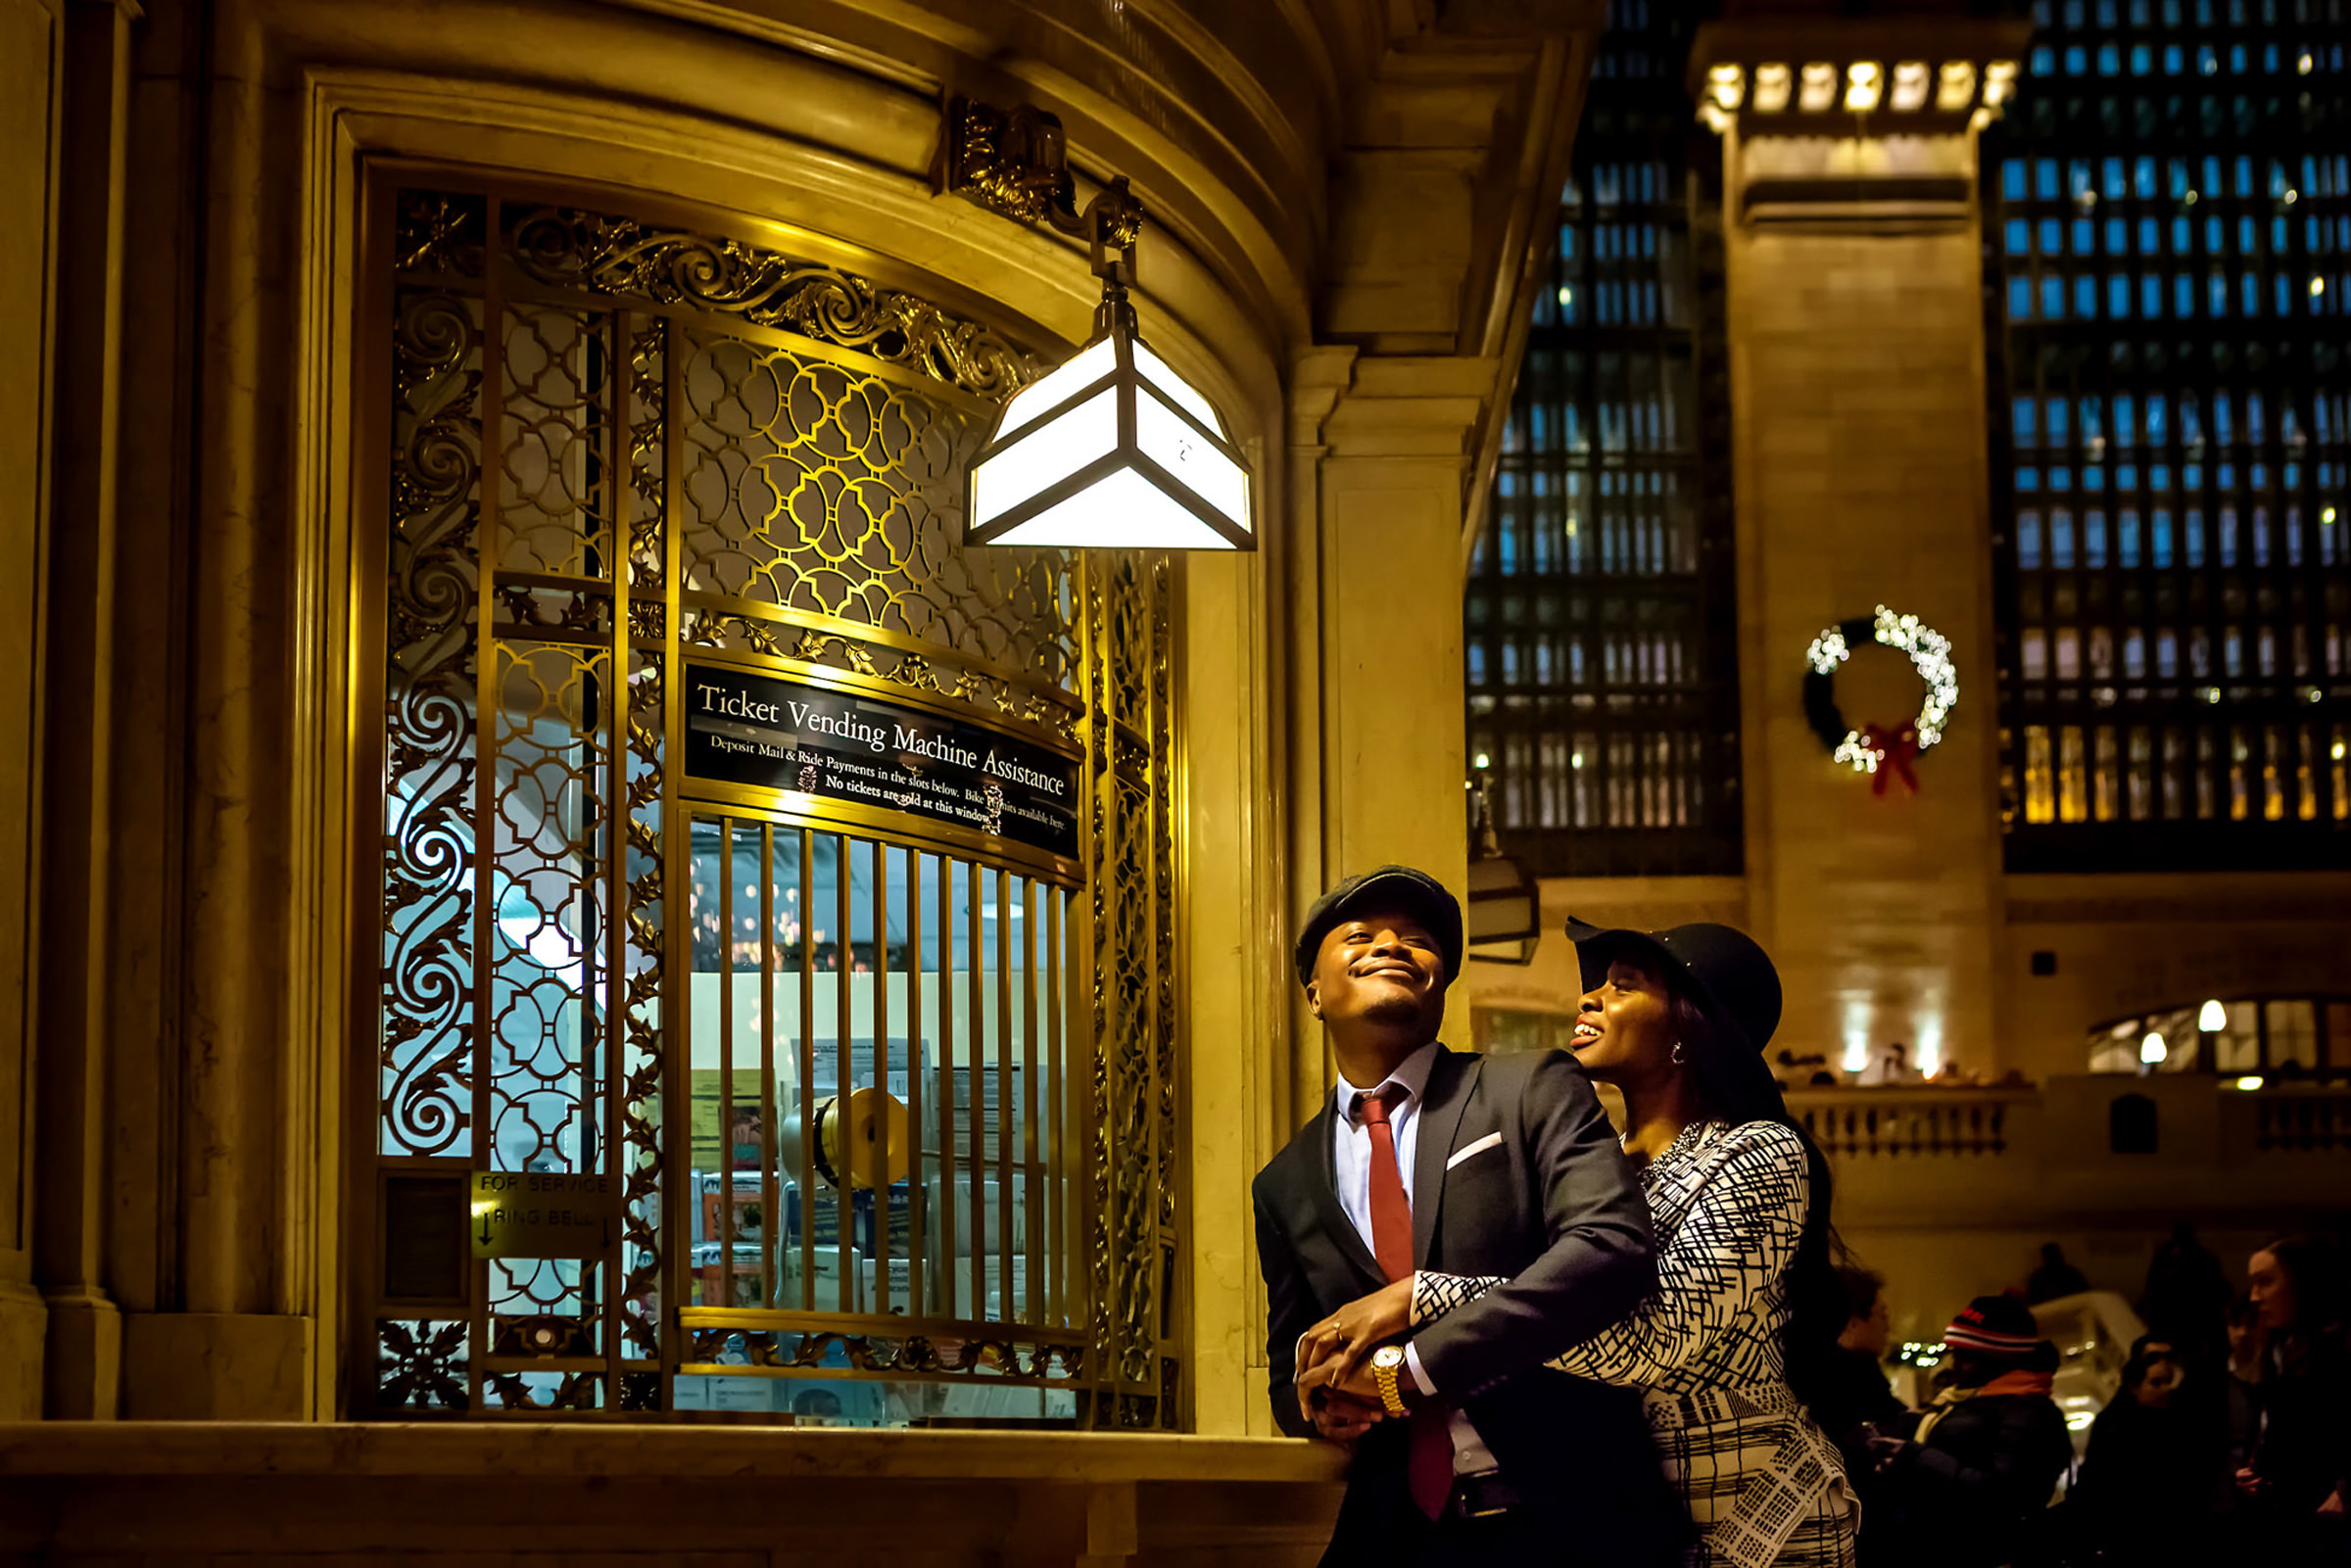 Couple leaning against ticket counter at Grand Central Station - photo by Alakija Studios